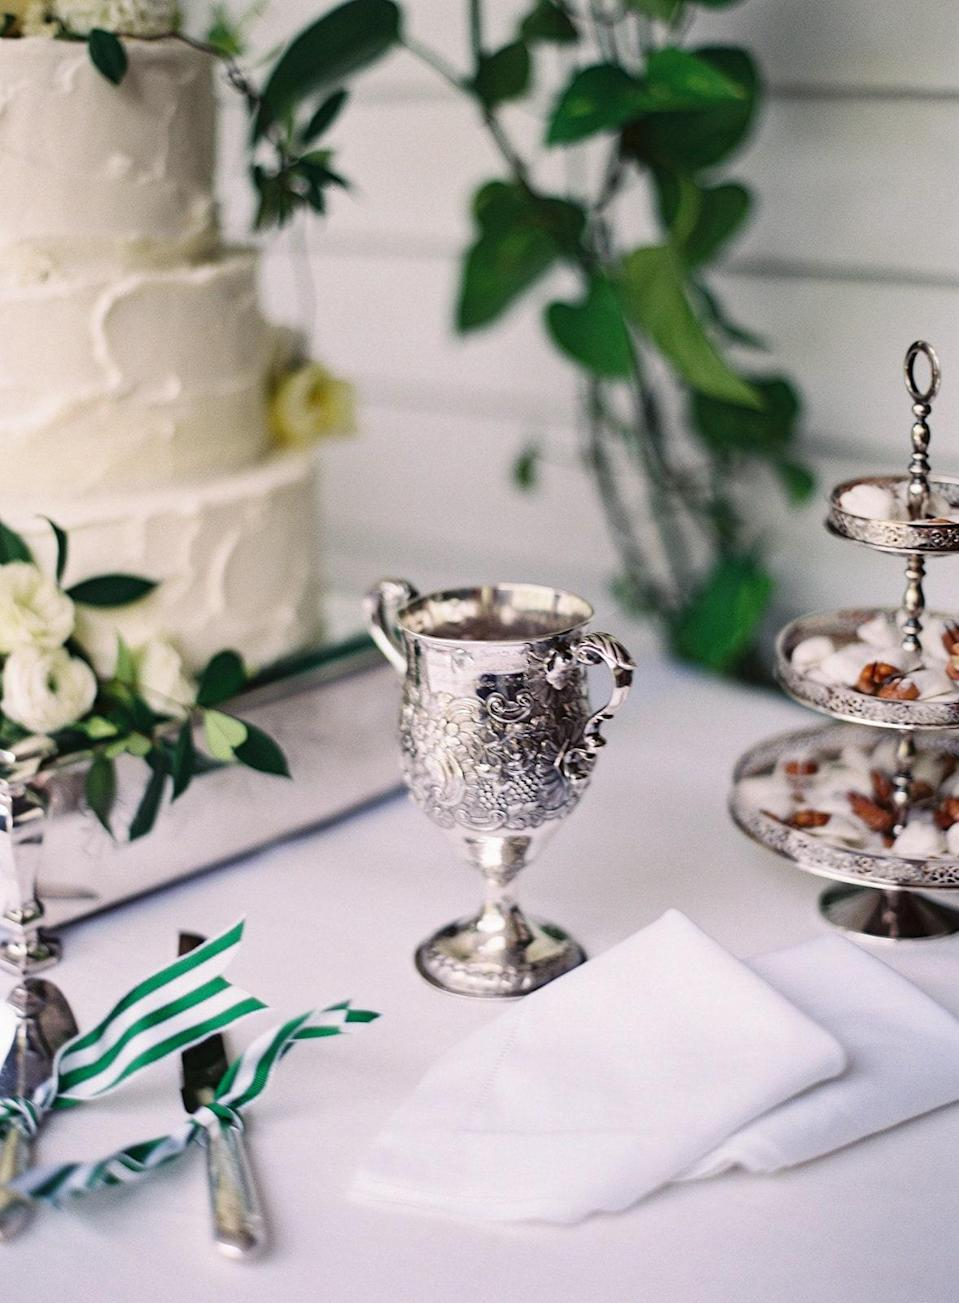 This is our Ramsay Family wedding Loving Cup. It has everyone in the family's names and wedding dates engraved on it. After we cut the cake, we drank champagne from the cup.